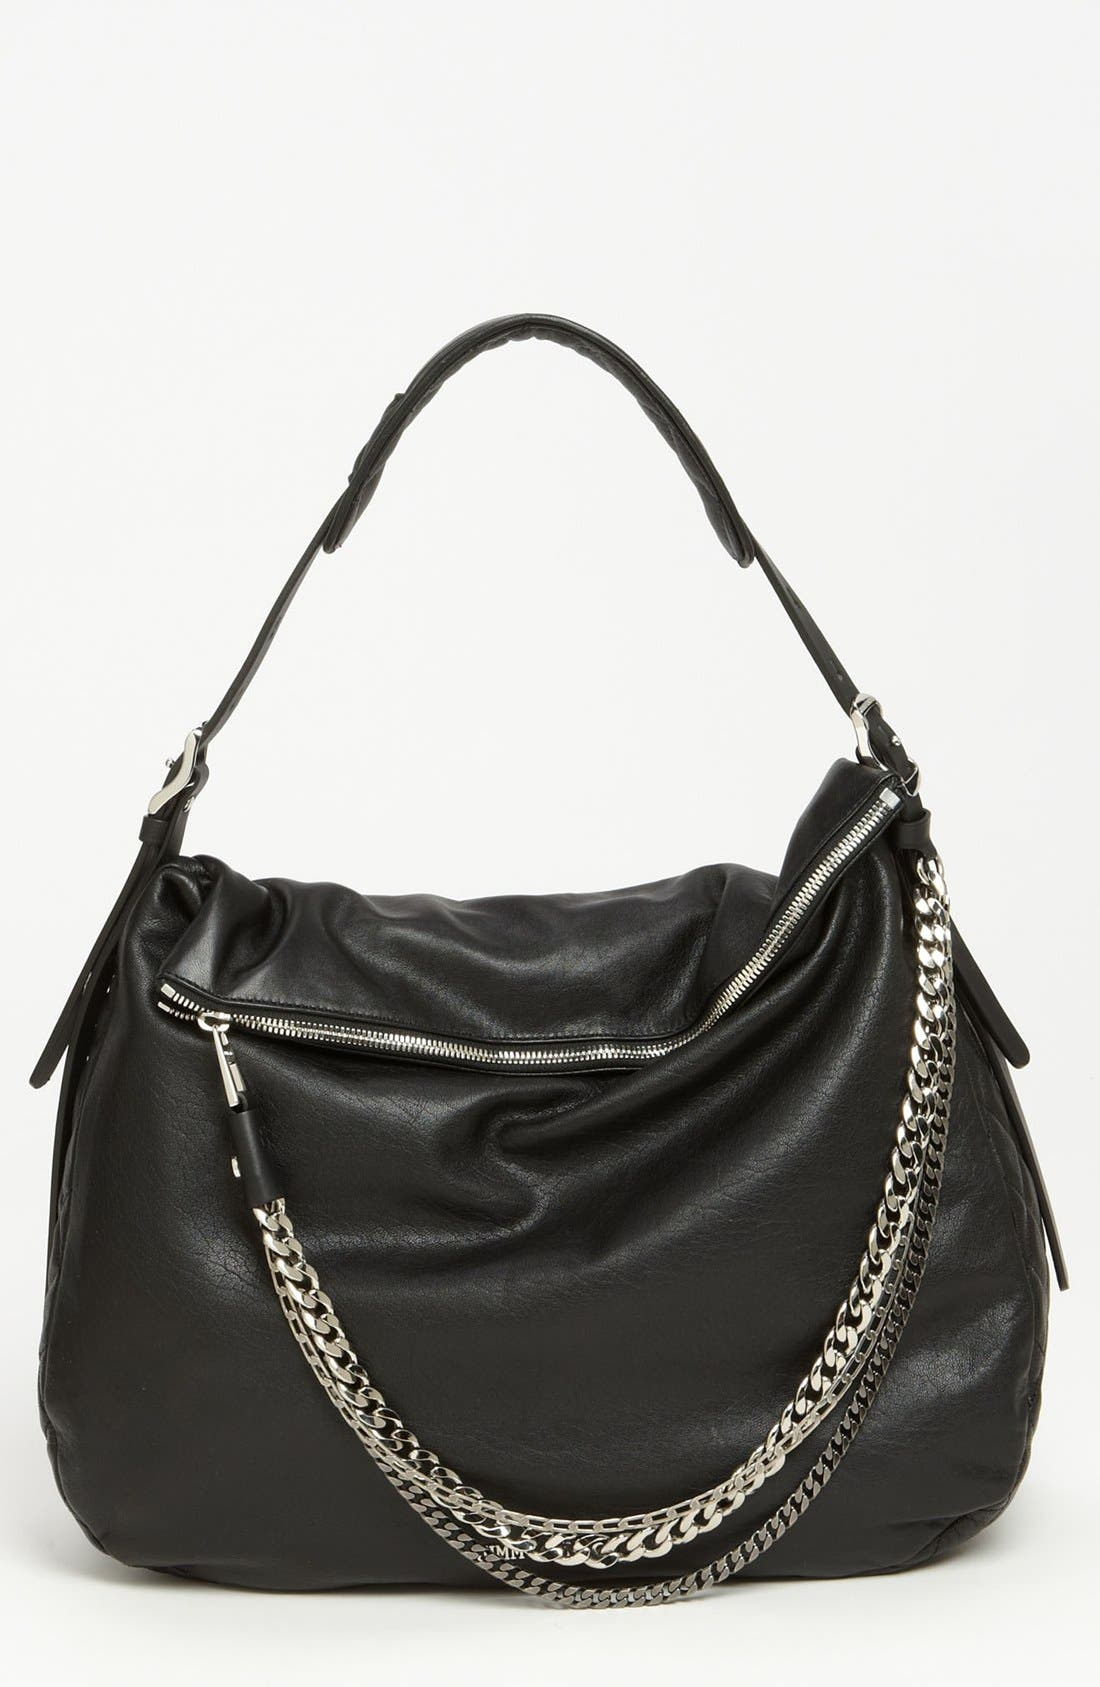 Alternate Image 1 Selected - Jimmy Choo 'Large Boho' Leather Hobo